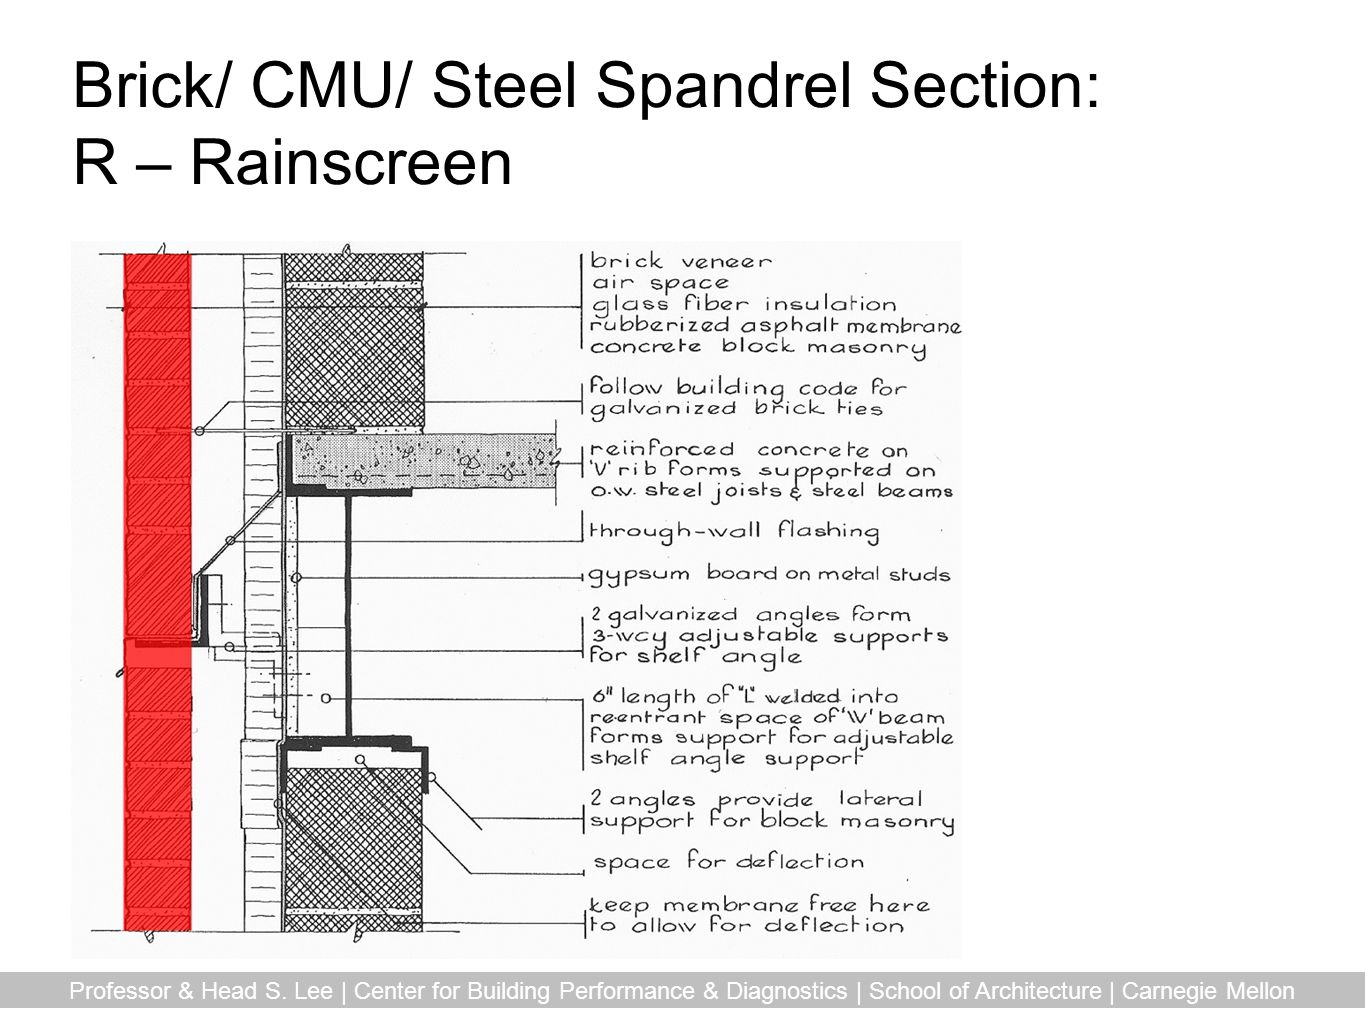 Brick/ CMU/ Steel Spandrel Section: R – Rainscreen